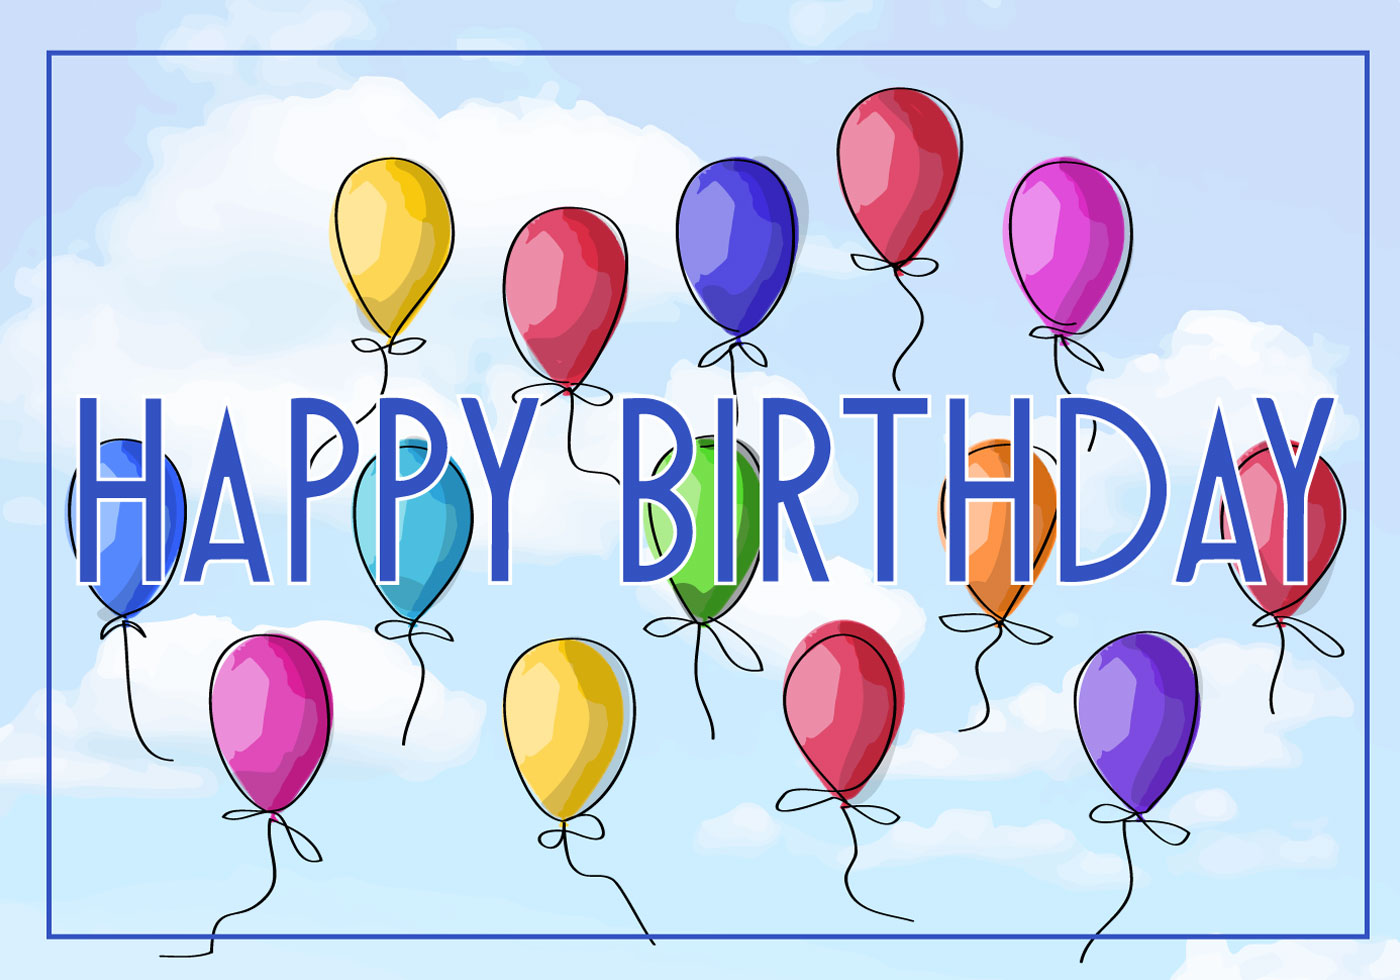 Free vector illustration of a happy birthday greeting card - Birthday cards images free download ...